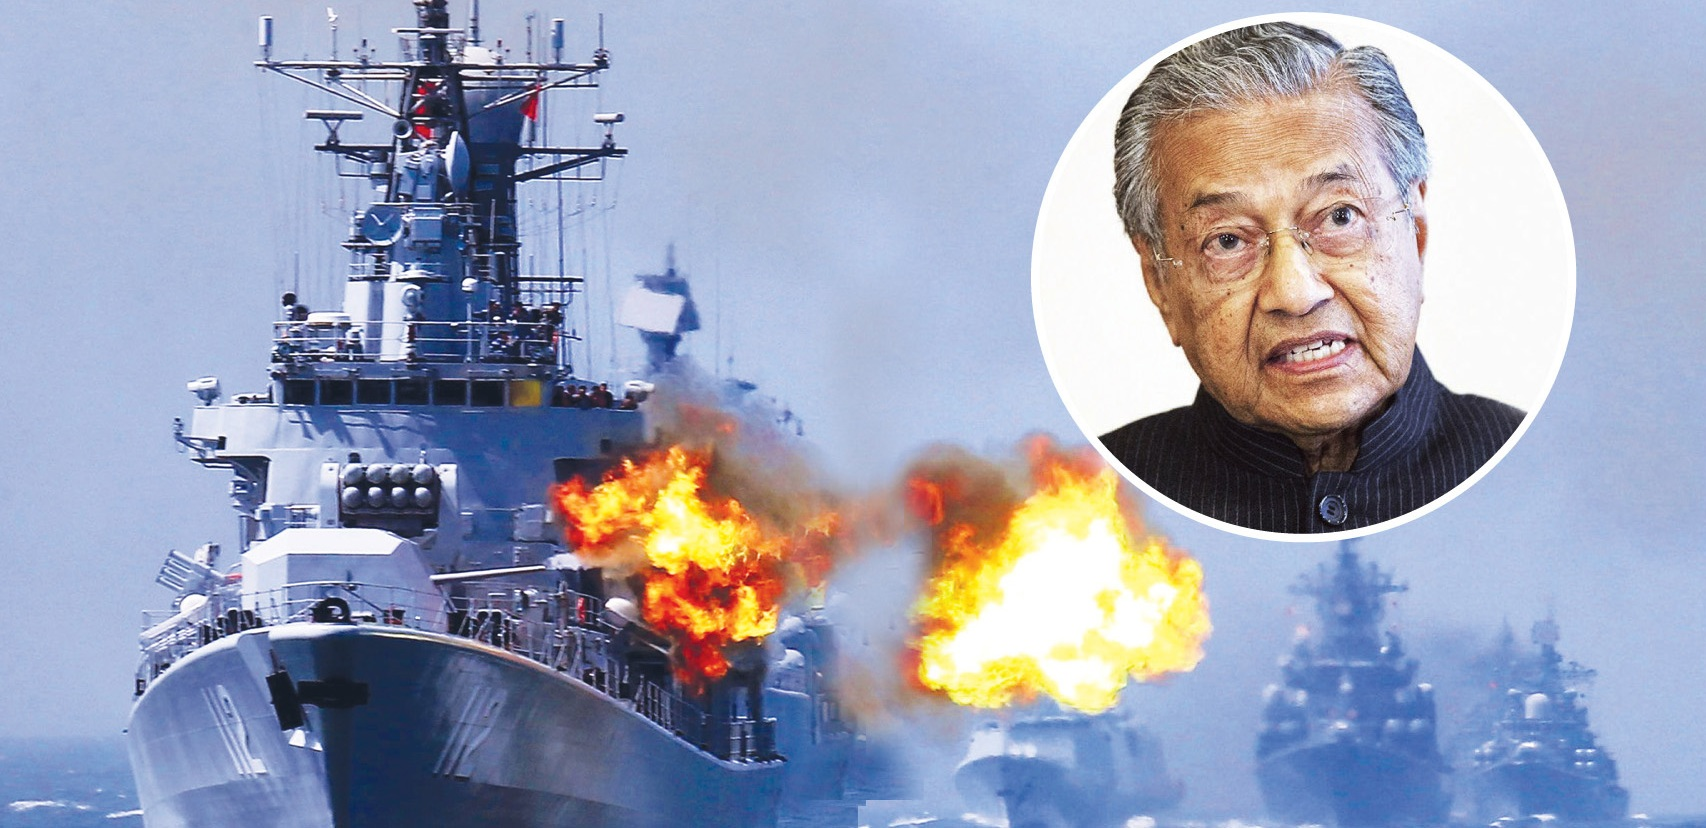 China militarizing the South China Sea may trigger a war, warns Prime Minister of Malaysia Mahathir Mohamad